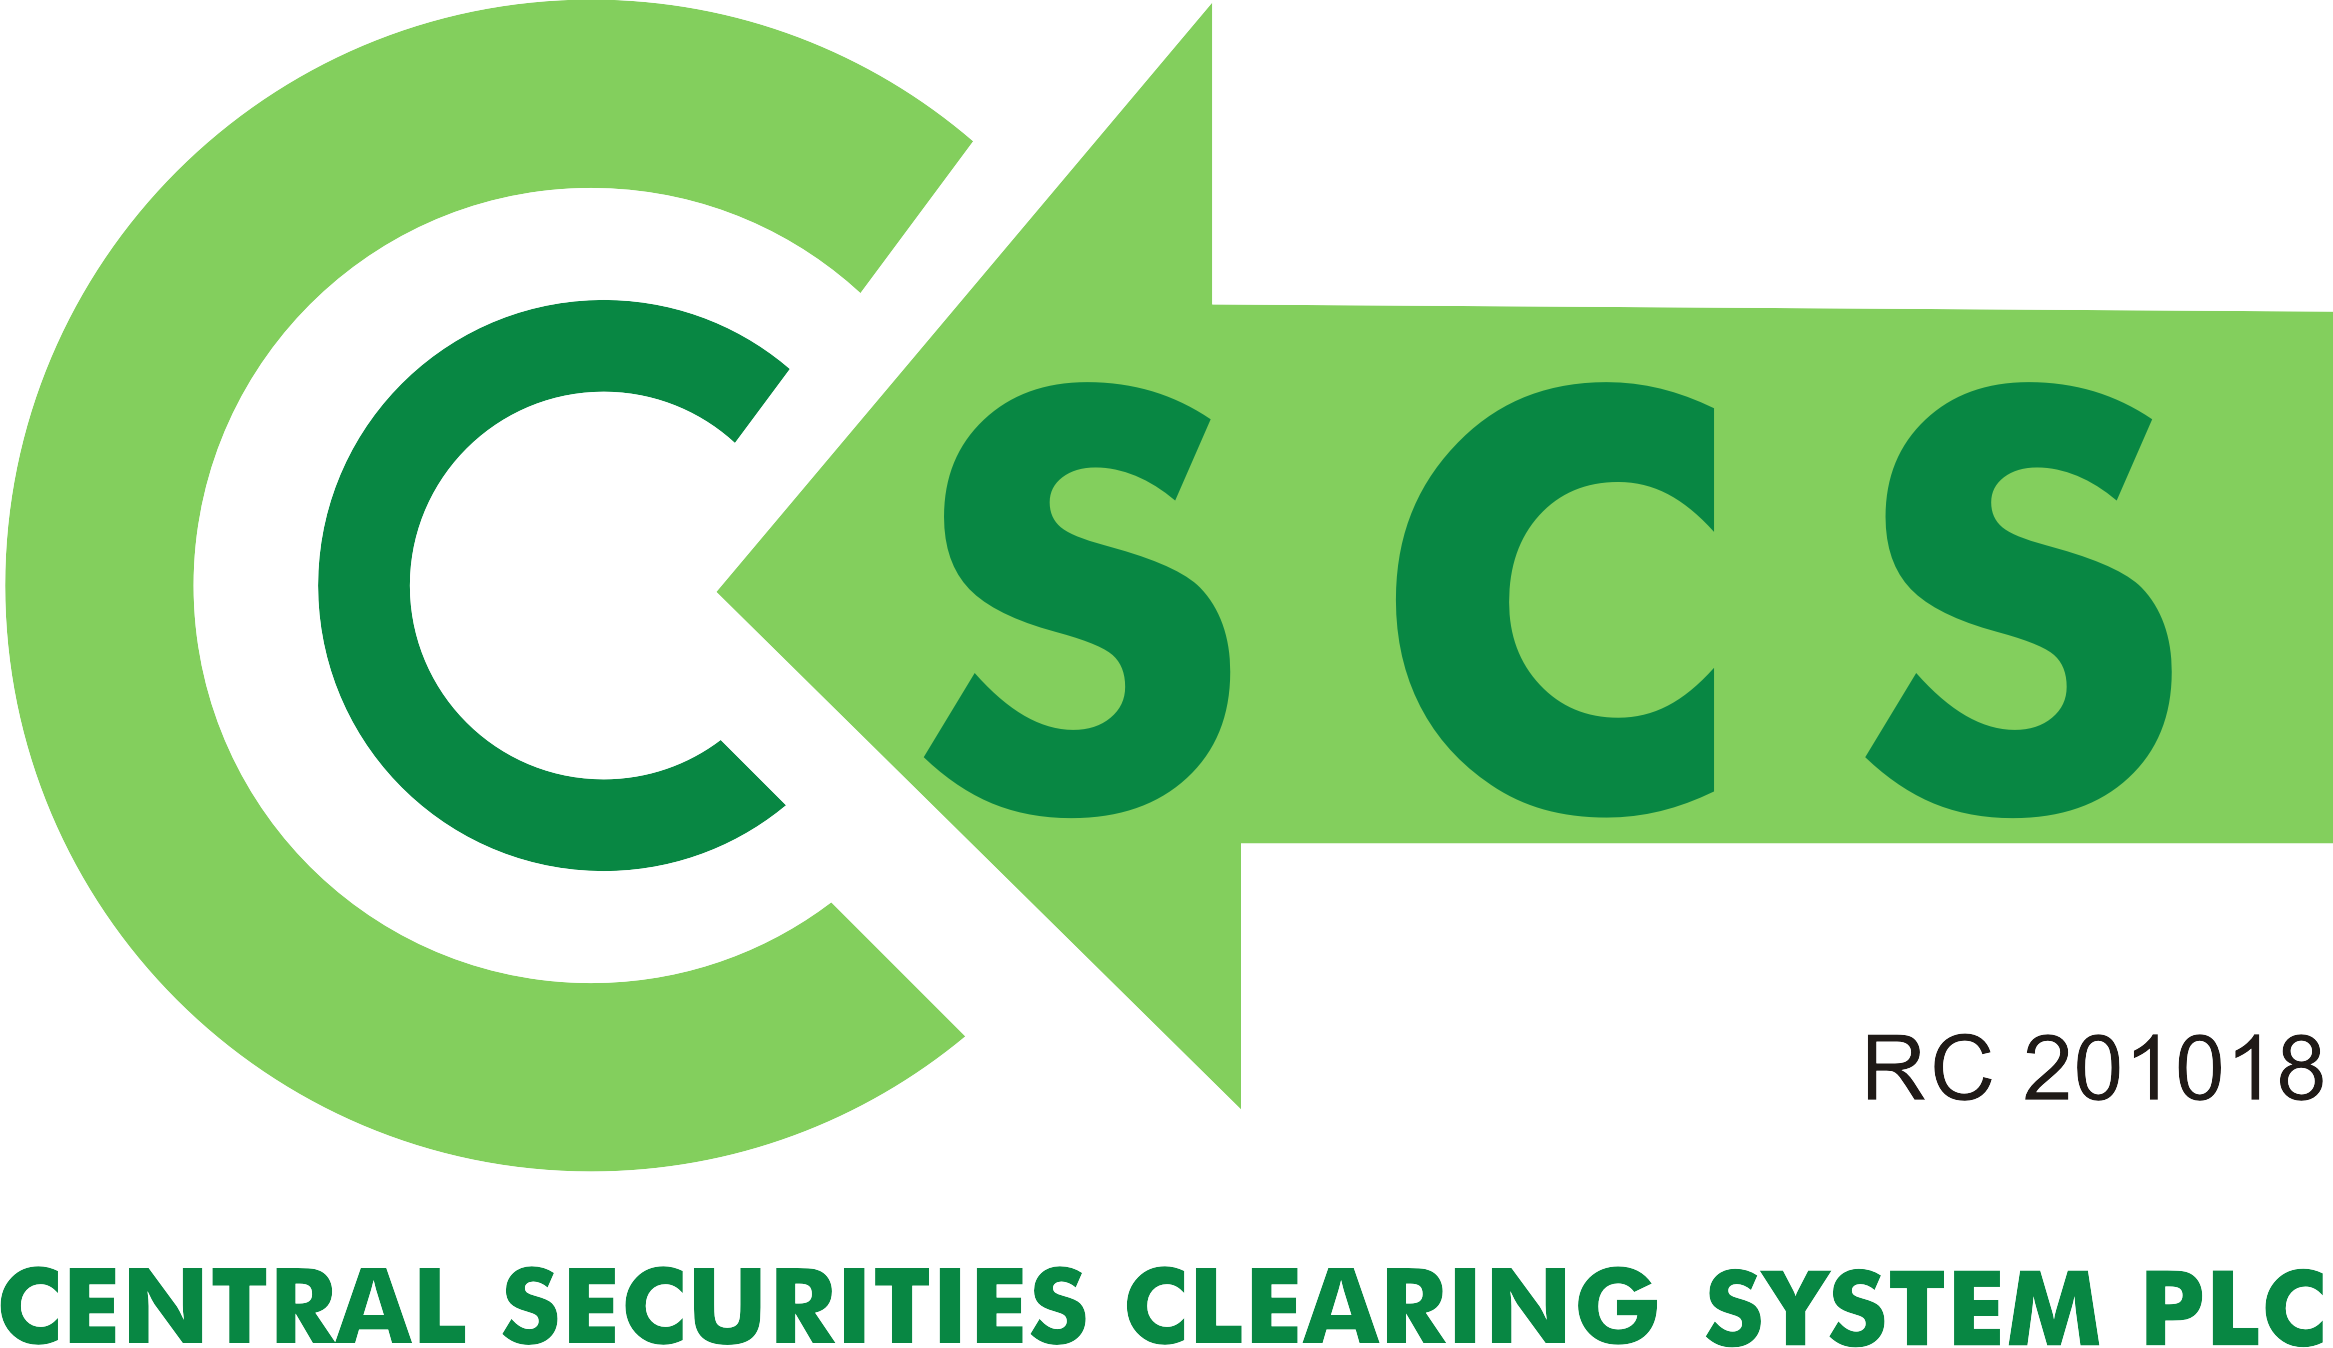 CSCS Boss appointed CSD representative on the global ISSA Operating Committee